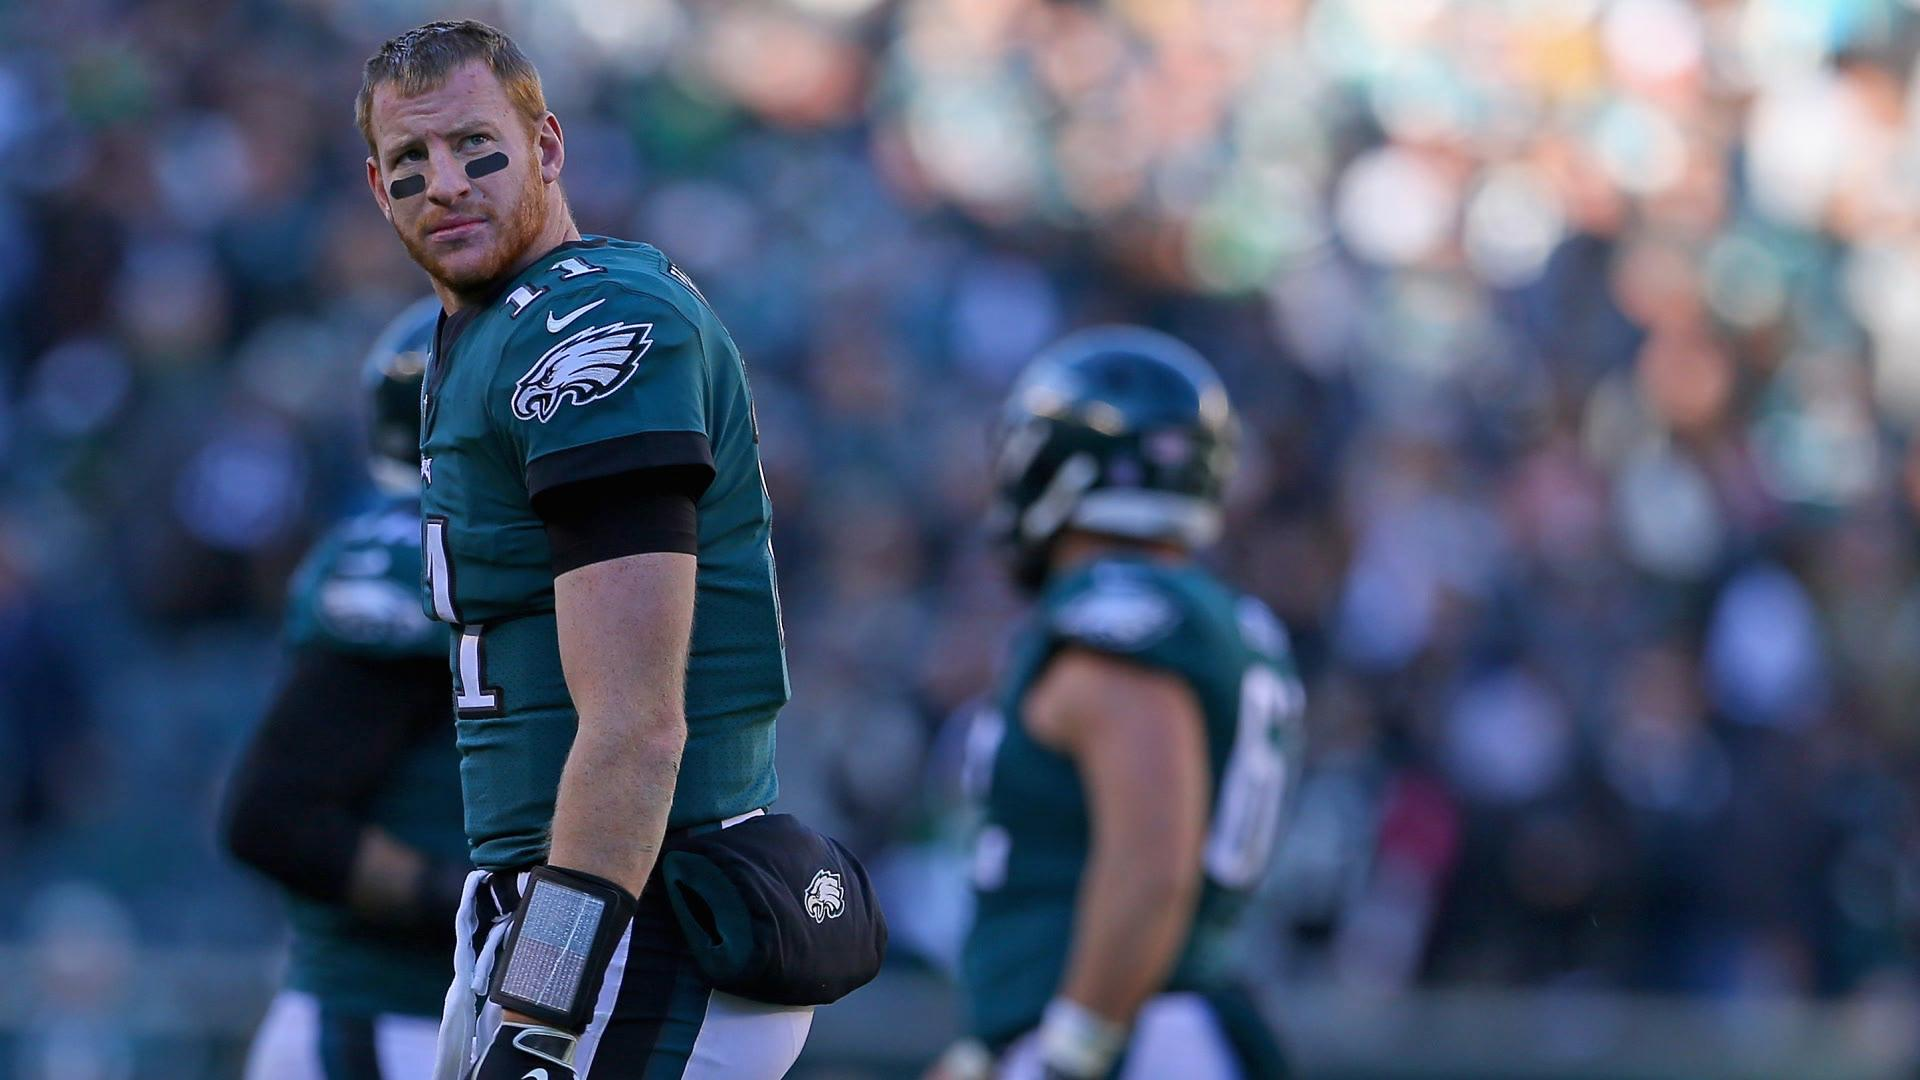 NFL: Peter King correctly predicts Super Bowl, doubts Carson Wentz story